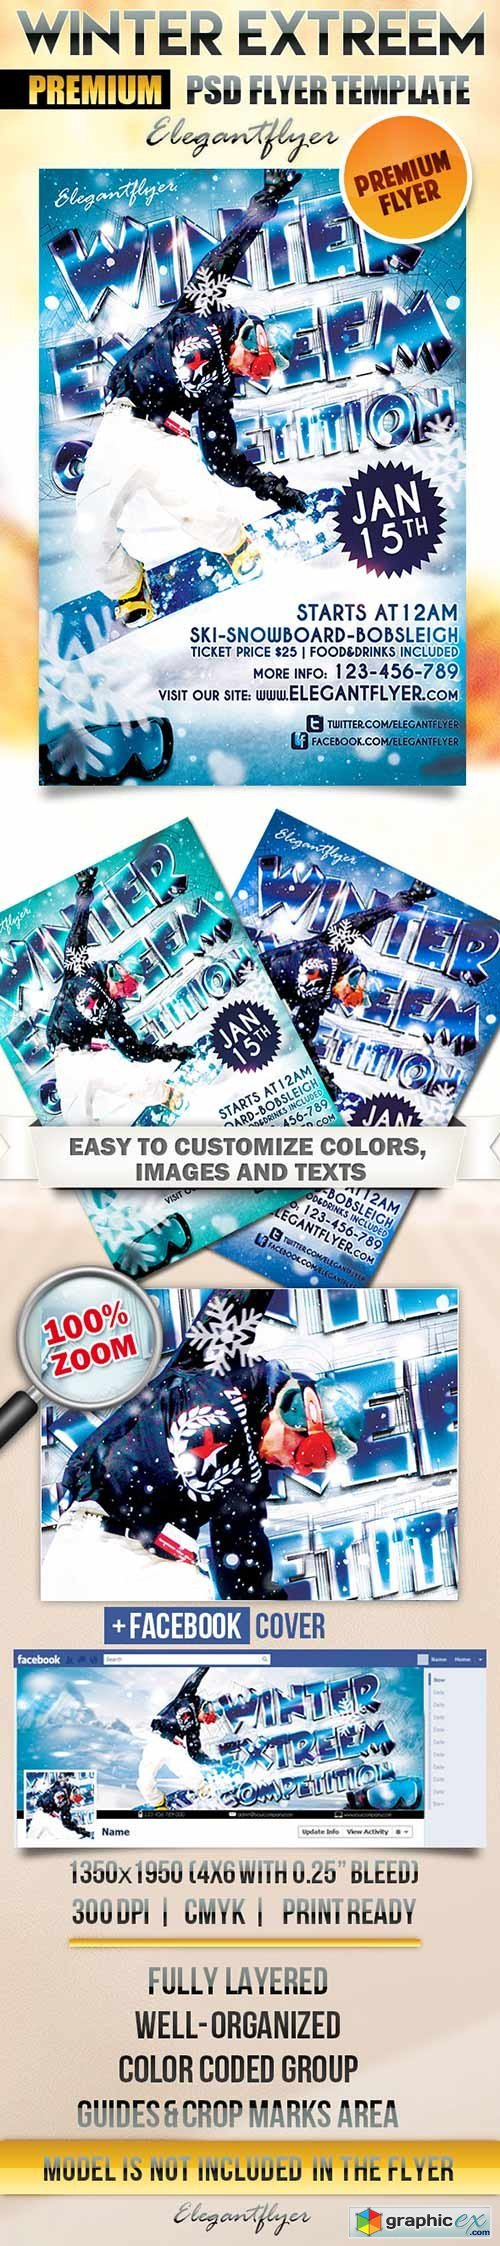 Winter Extreem Competition Flyer PSD Template + Facebook Cover